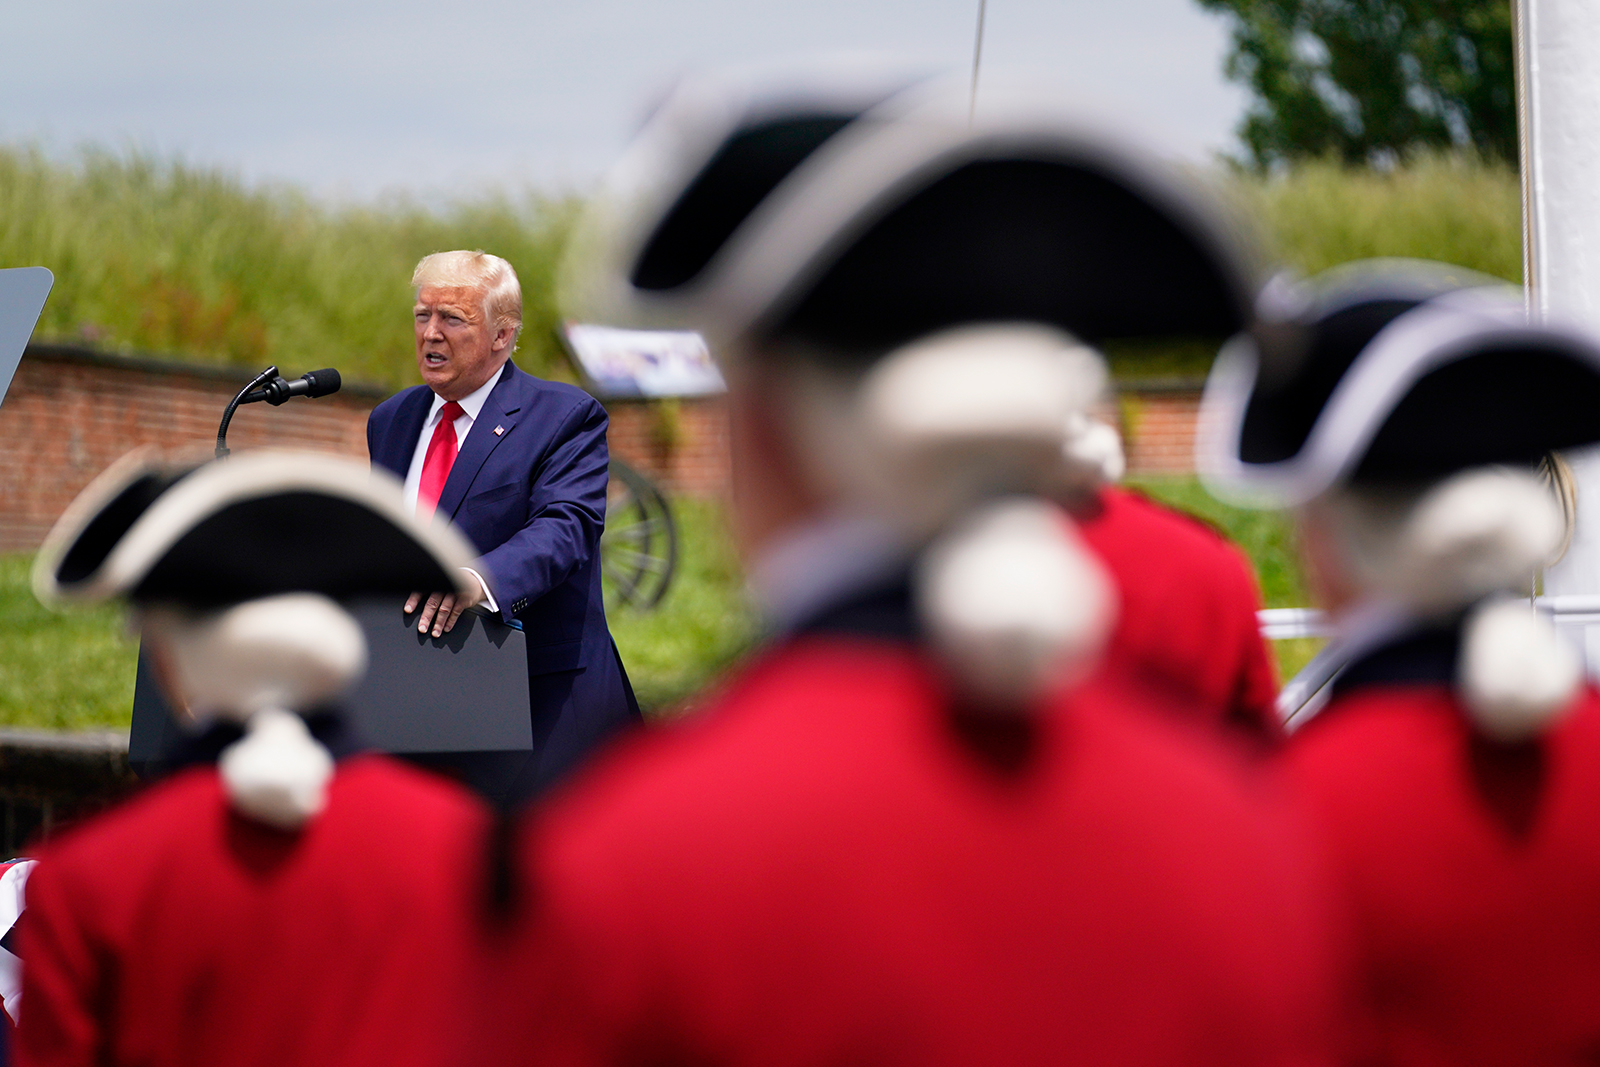 President Donald Trump speaks during a Memorial Day ceremony at Fort McHenry National Monument and Historic Shrine in Baltimore, on Monday, May 25.